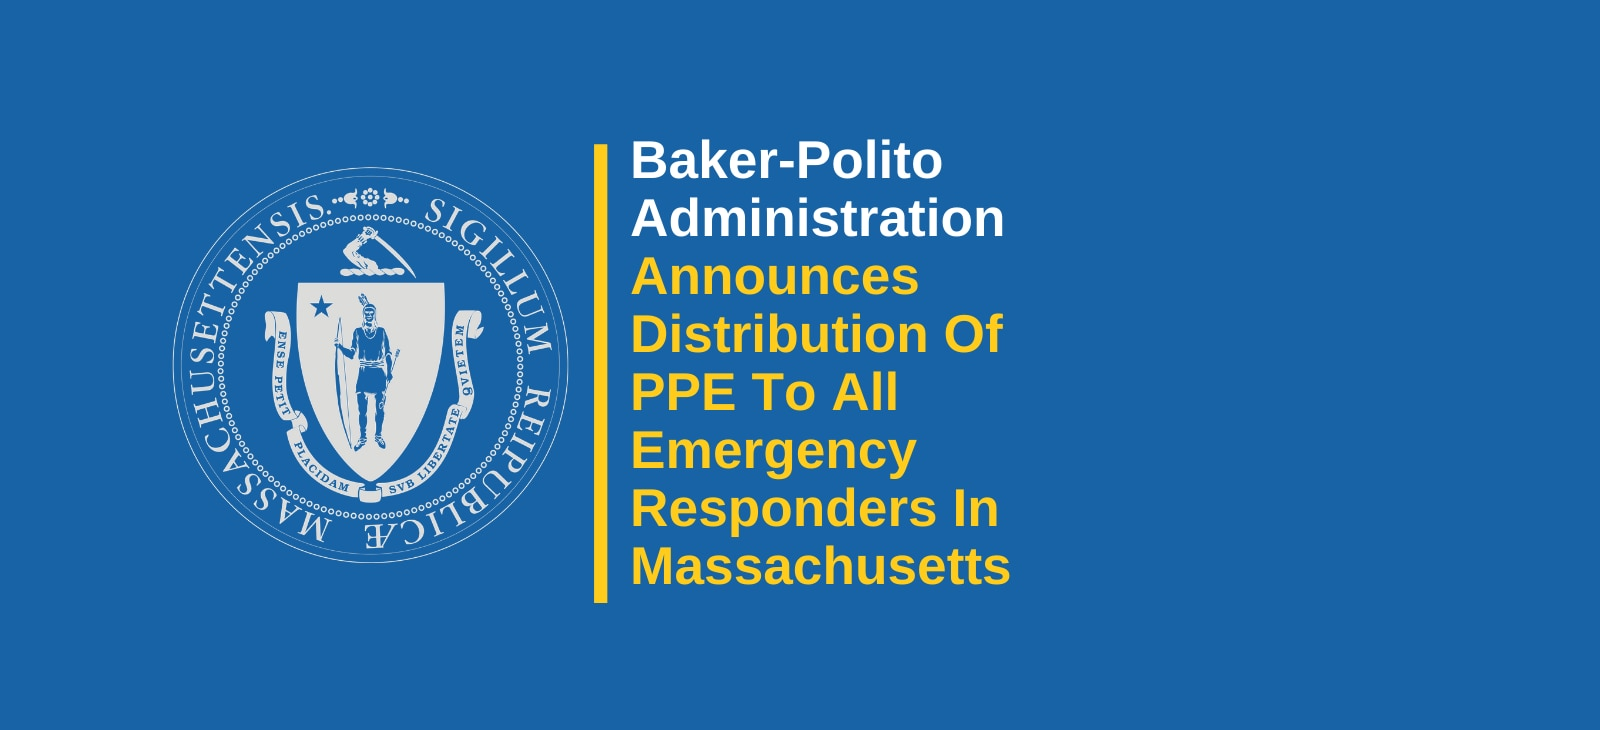 Baker-Polito Administration Announces Distribution Of PPE To All Emergency Responders In Massachusetts